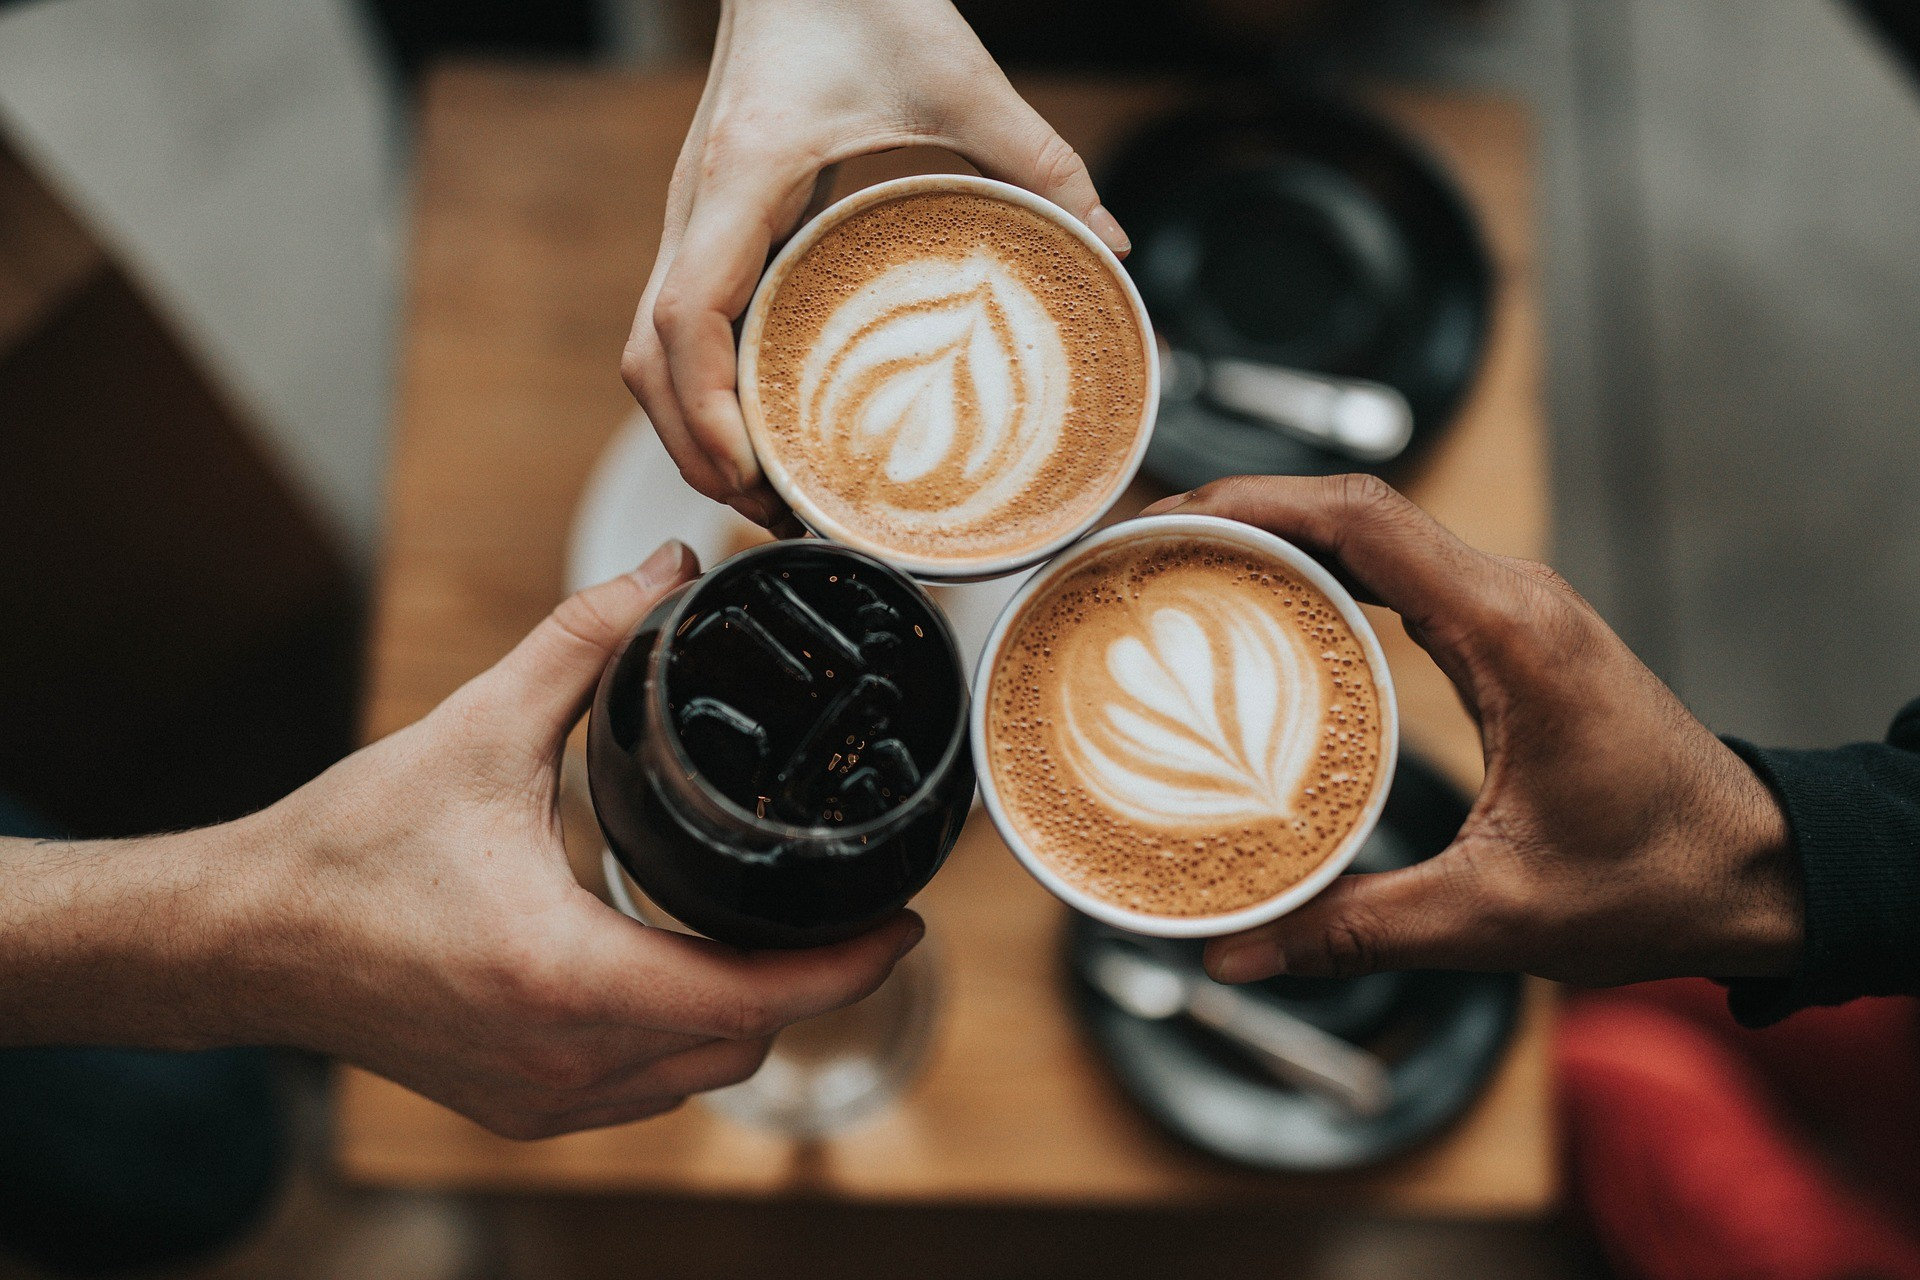 competitive advantage: connect over coffee